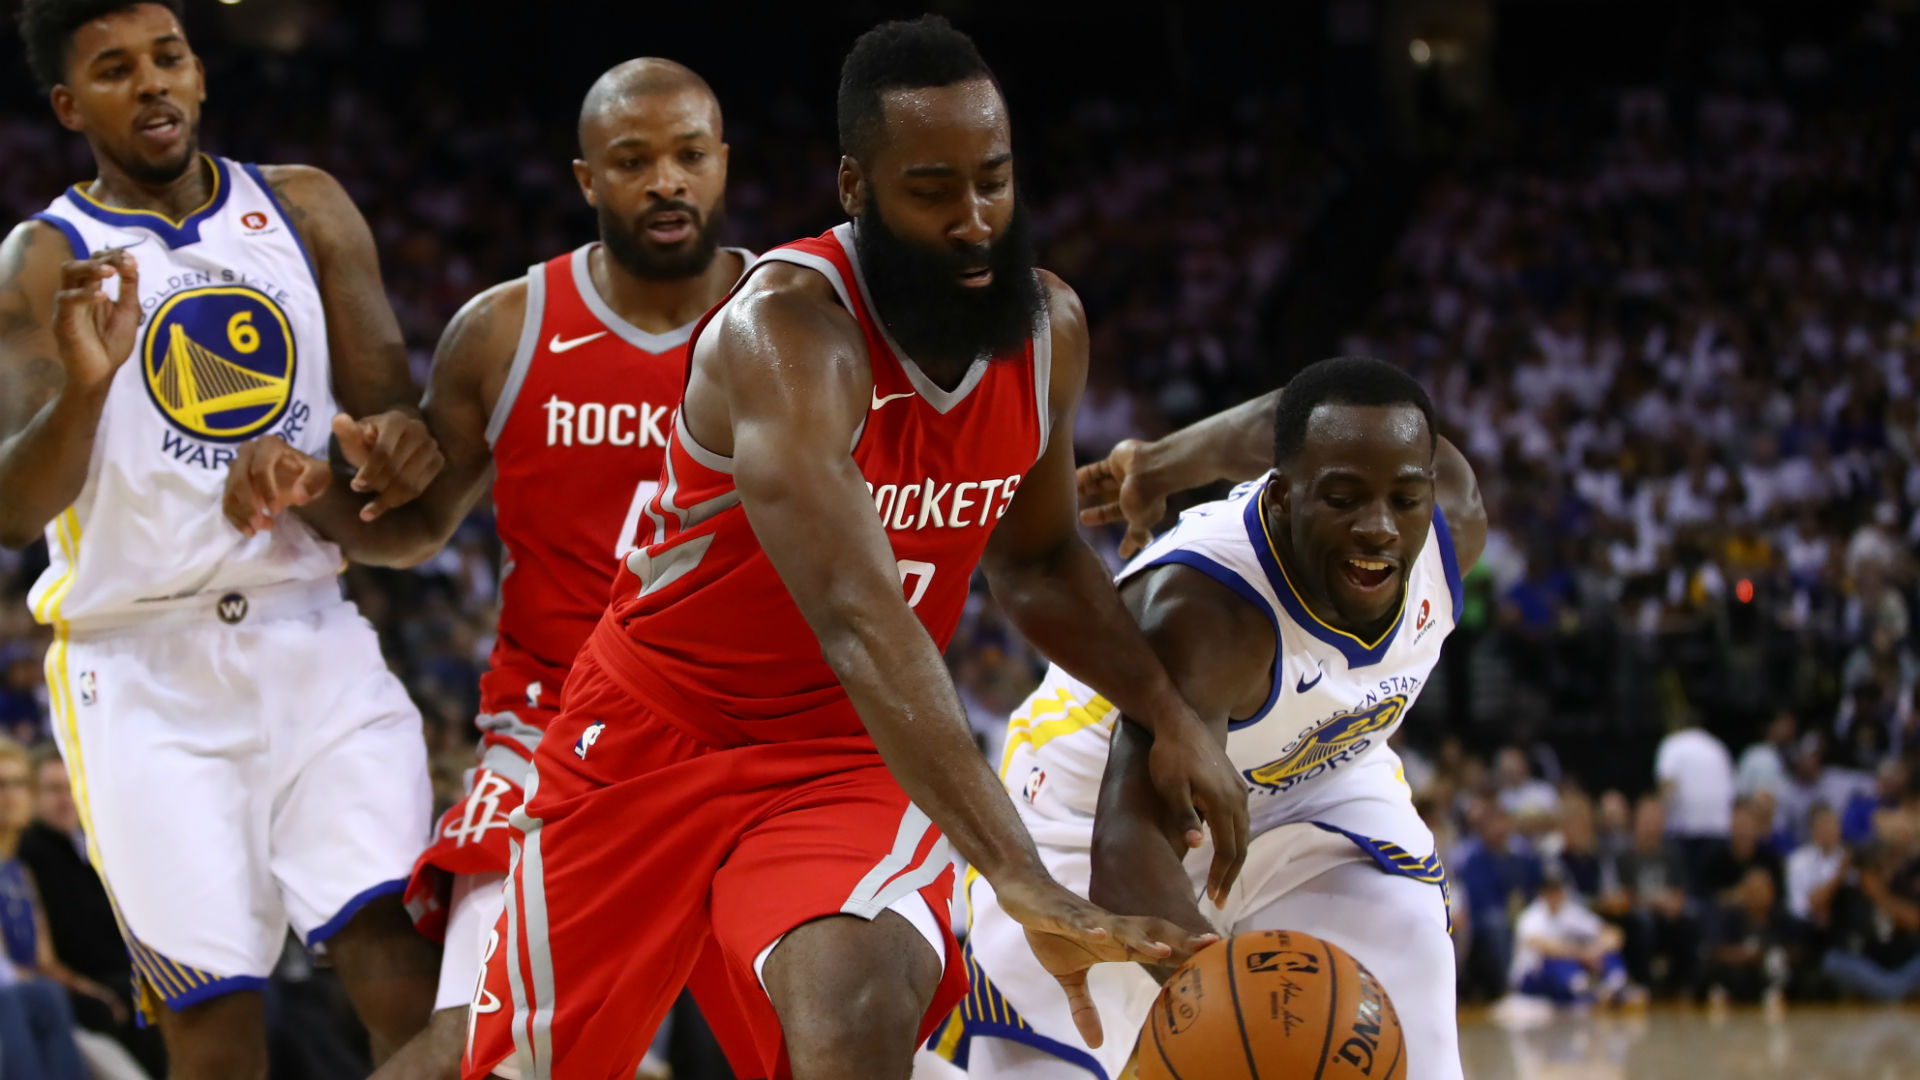 james-harden-draymond-green-ftr-041218.jpg